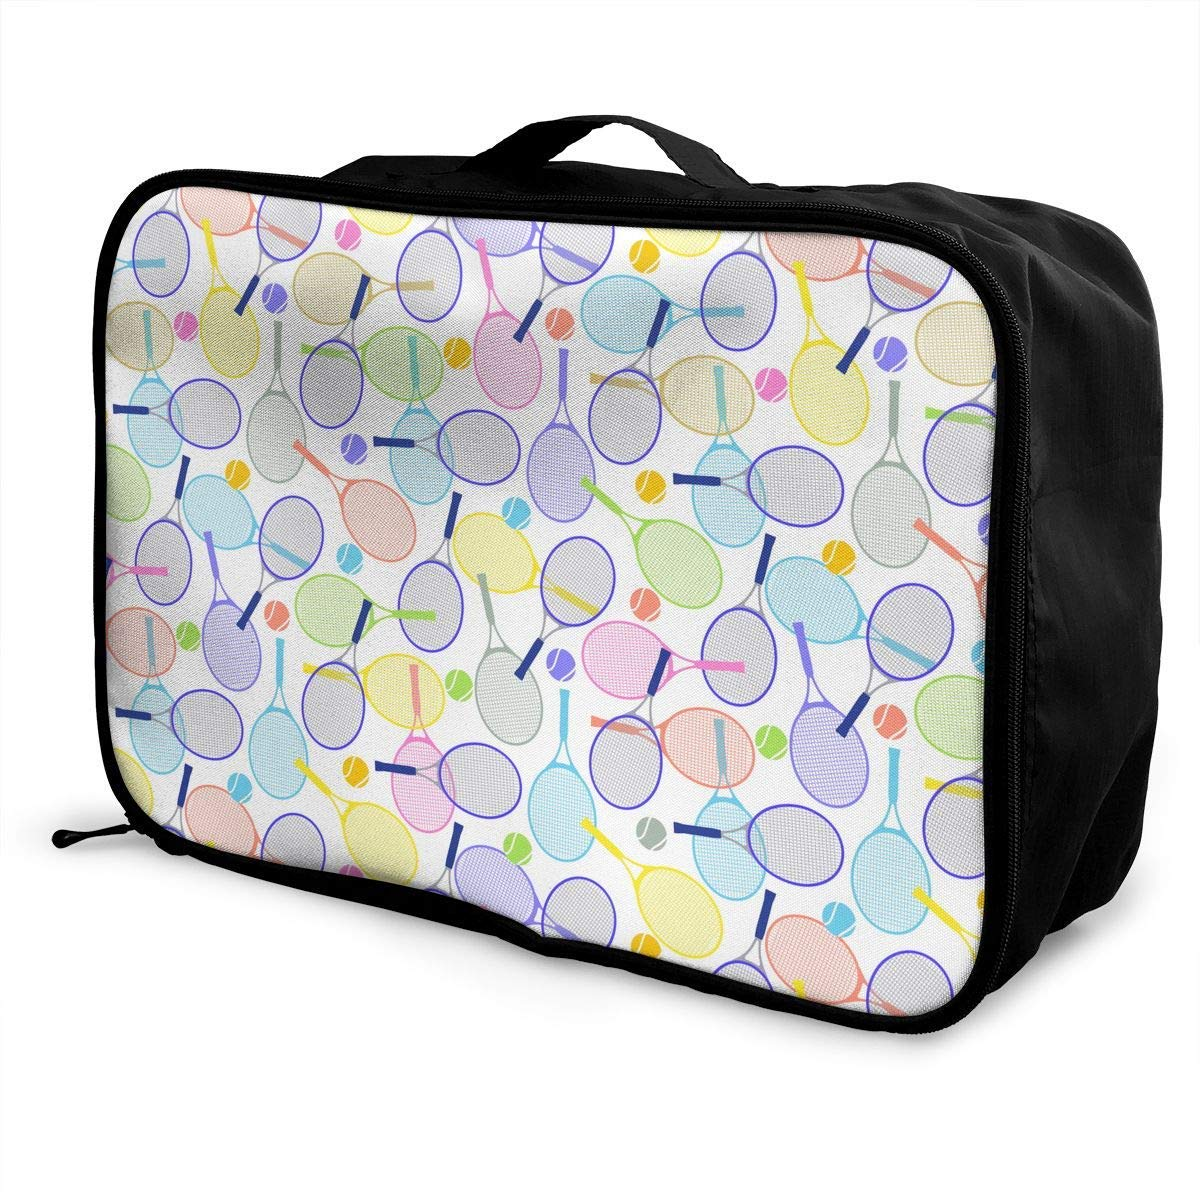 JTRVW Travel Luggage Trolley Bag Portable Lightweight Suitcases Duffle Tote Bag Handbag Tennis Rackets And Balls Pattern